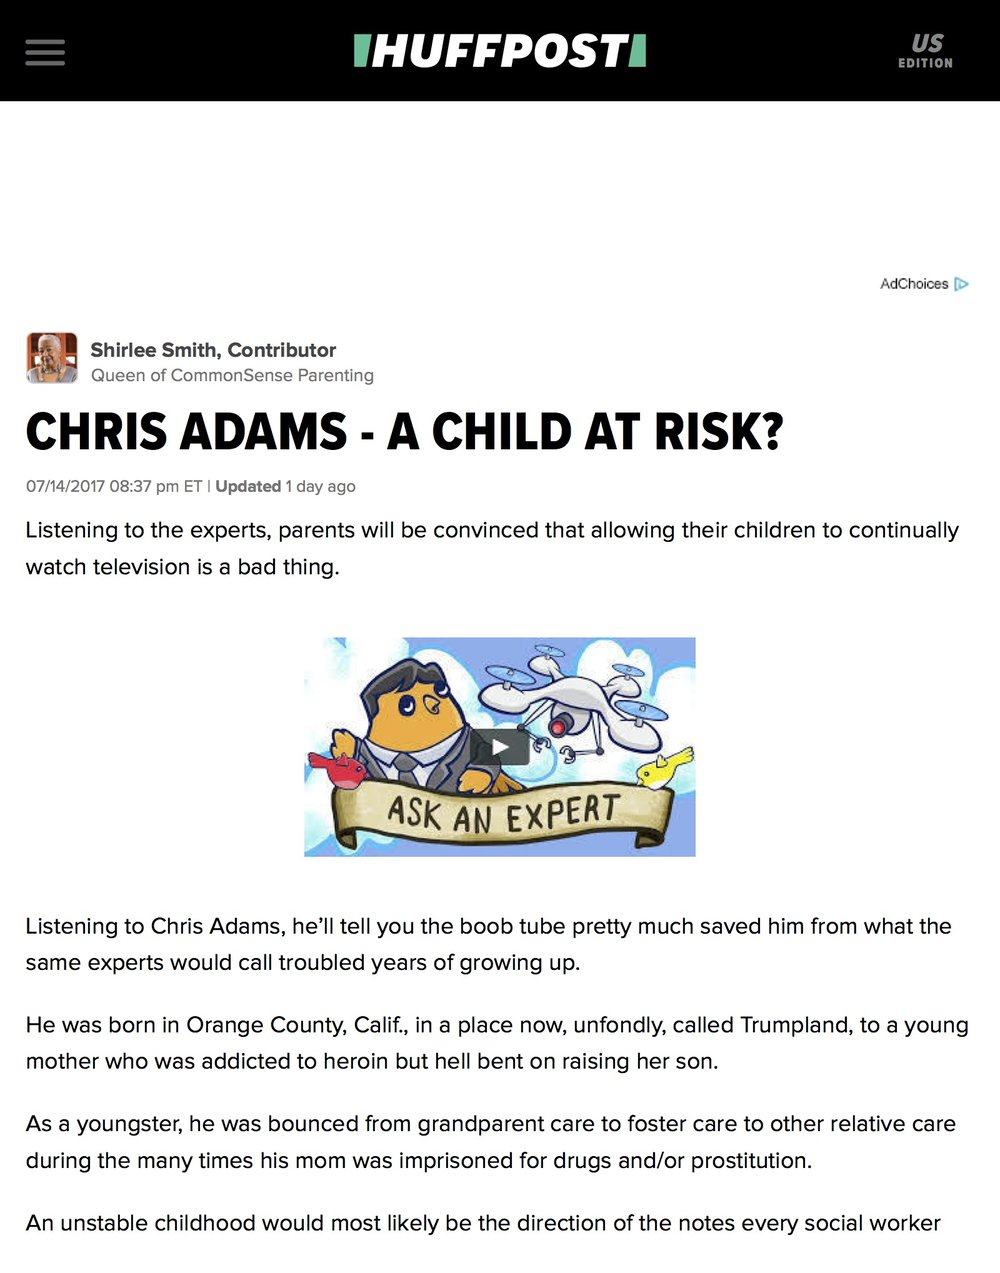 CHRIS ADAMS - A CHILD AT RISK? | HuffPost P1.jpg